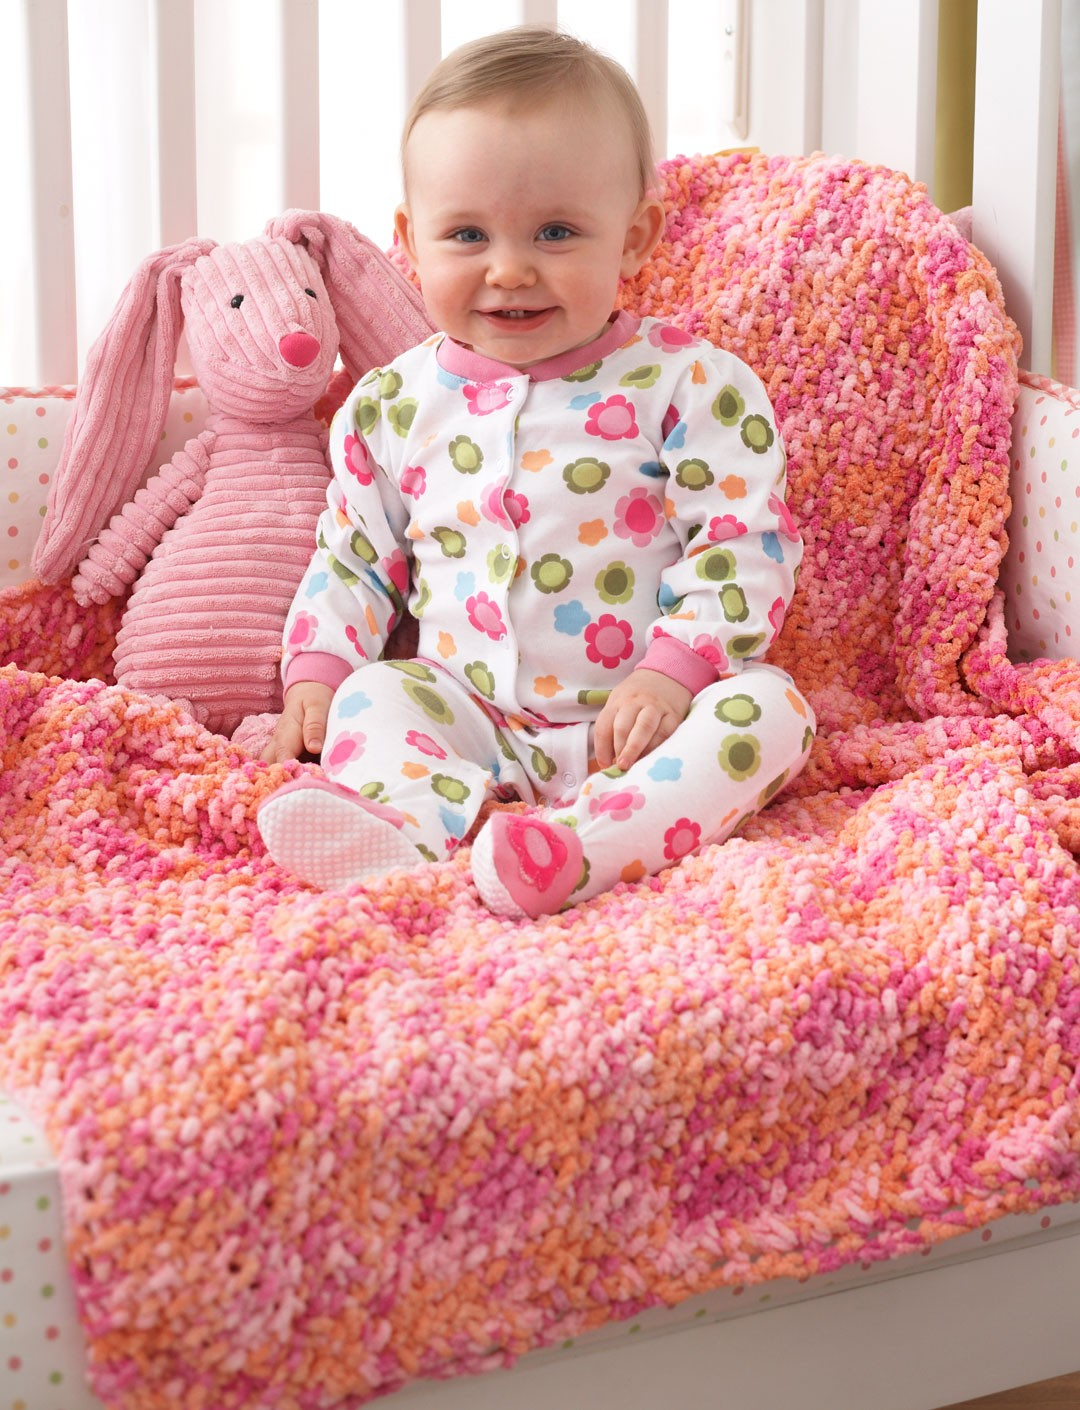 Bernat Baby Blanket Yarn Knitting Patterns : Bernat Corner to Corner Seed St Blanket, Knit Pattern Yarnspirations